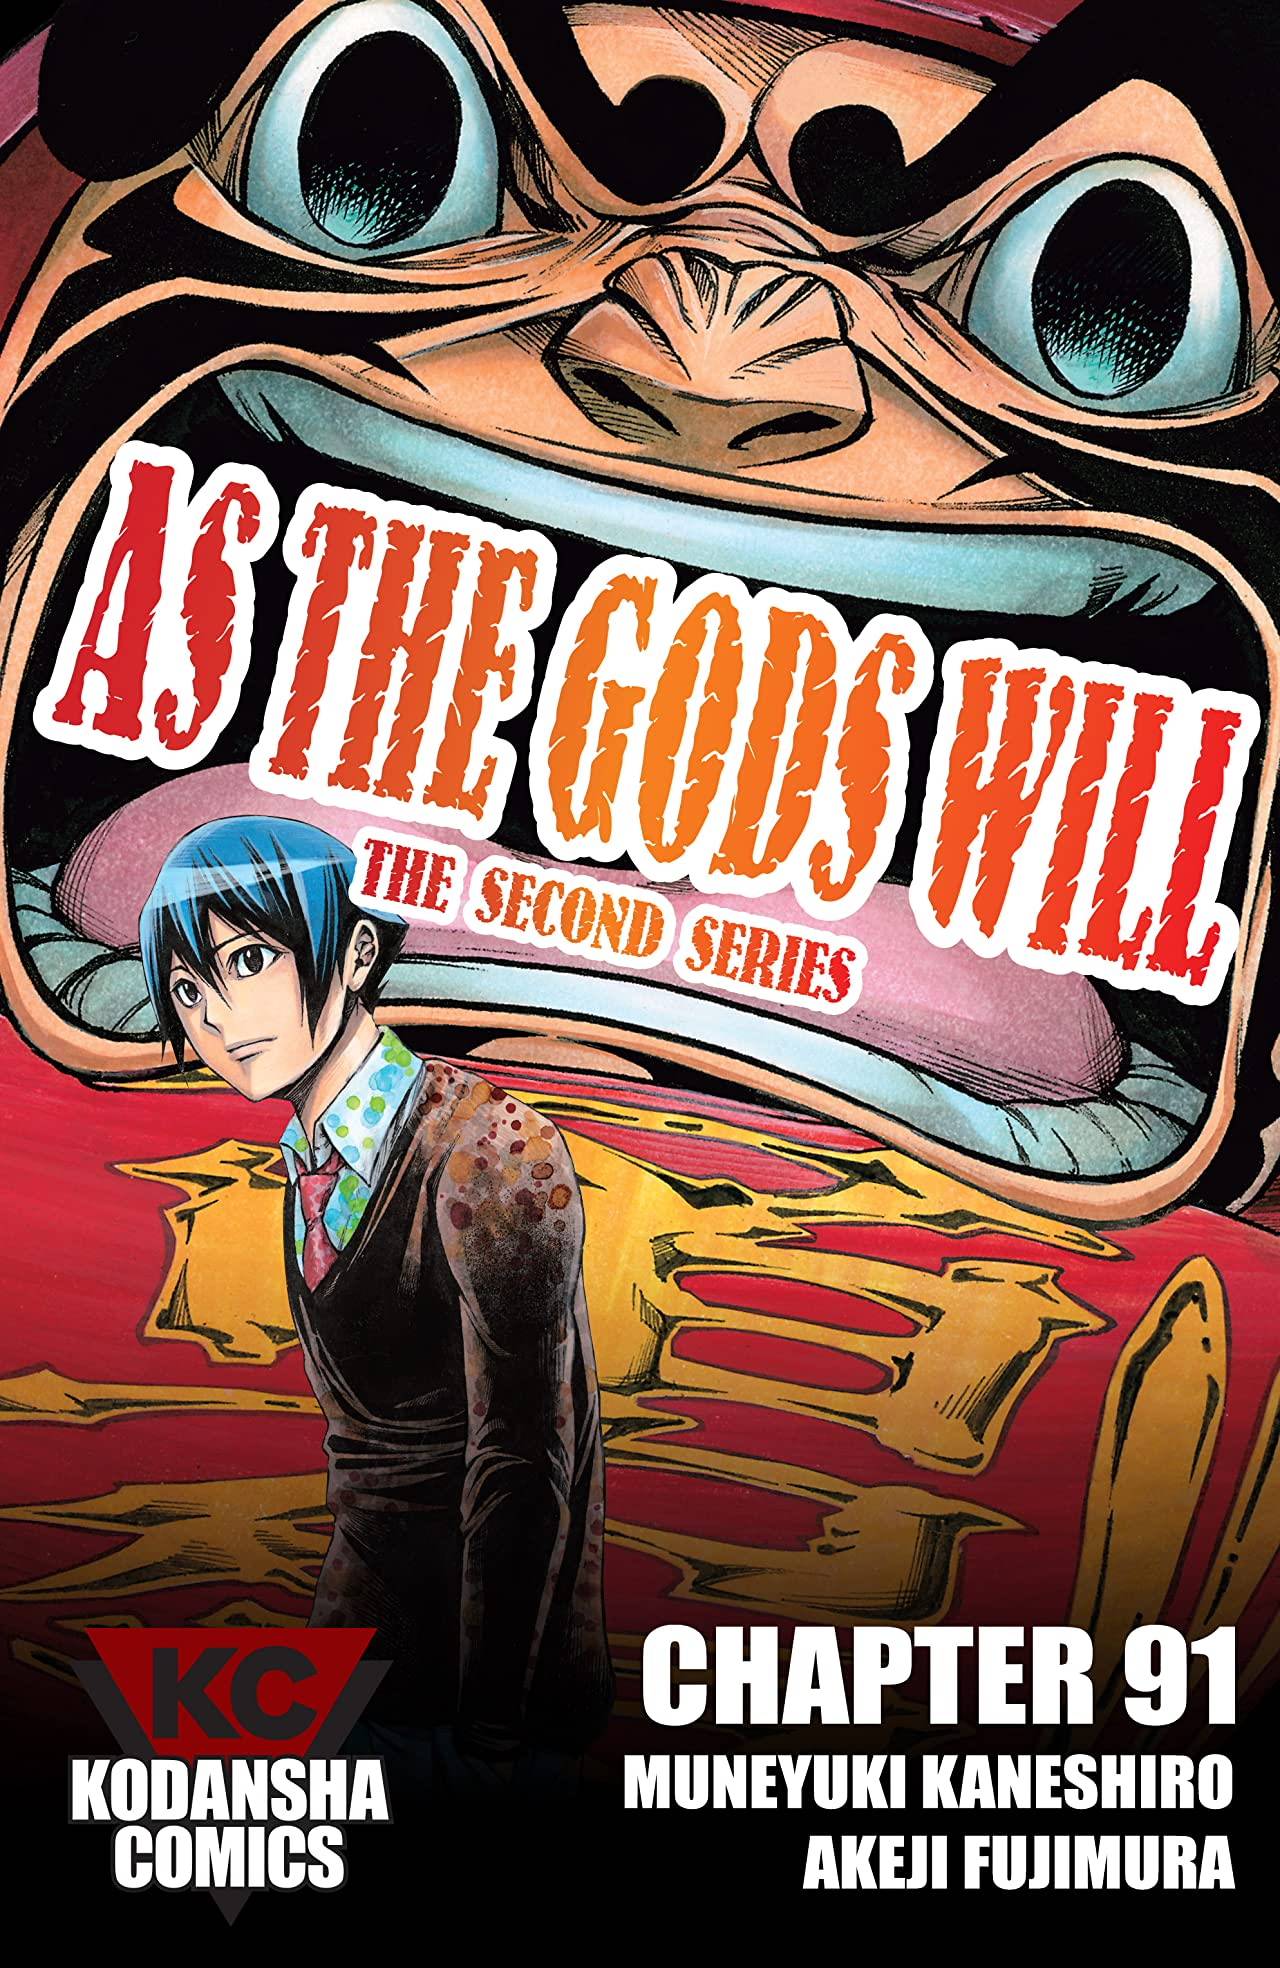 As The Gods Will: The Second Series #91